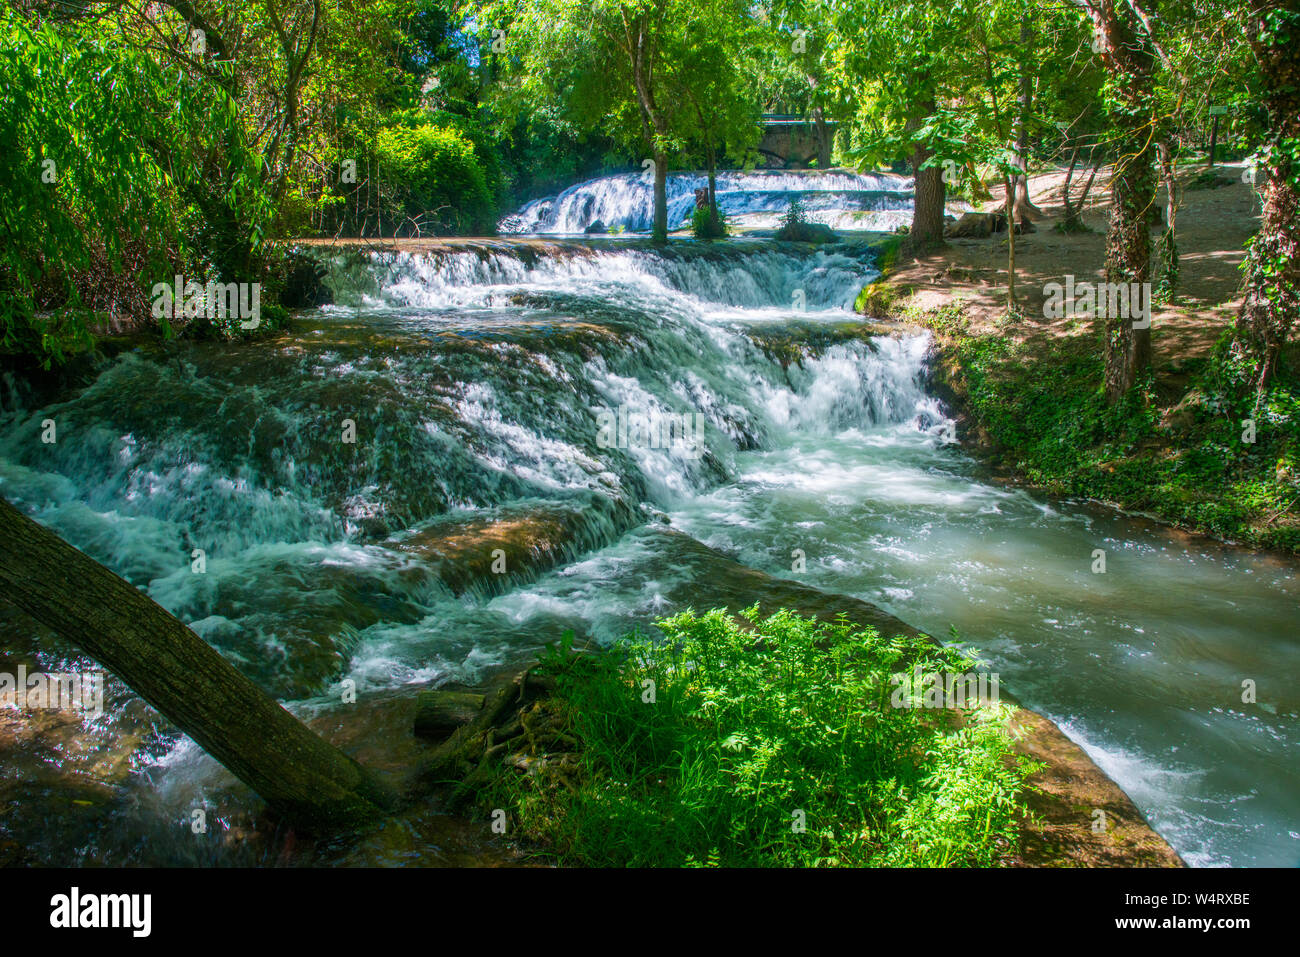 River Piedra Monasterio De Piedra Natural Park Nuevalos Zaragoza Province Aragon Spain Stock Photo Alamy